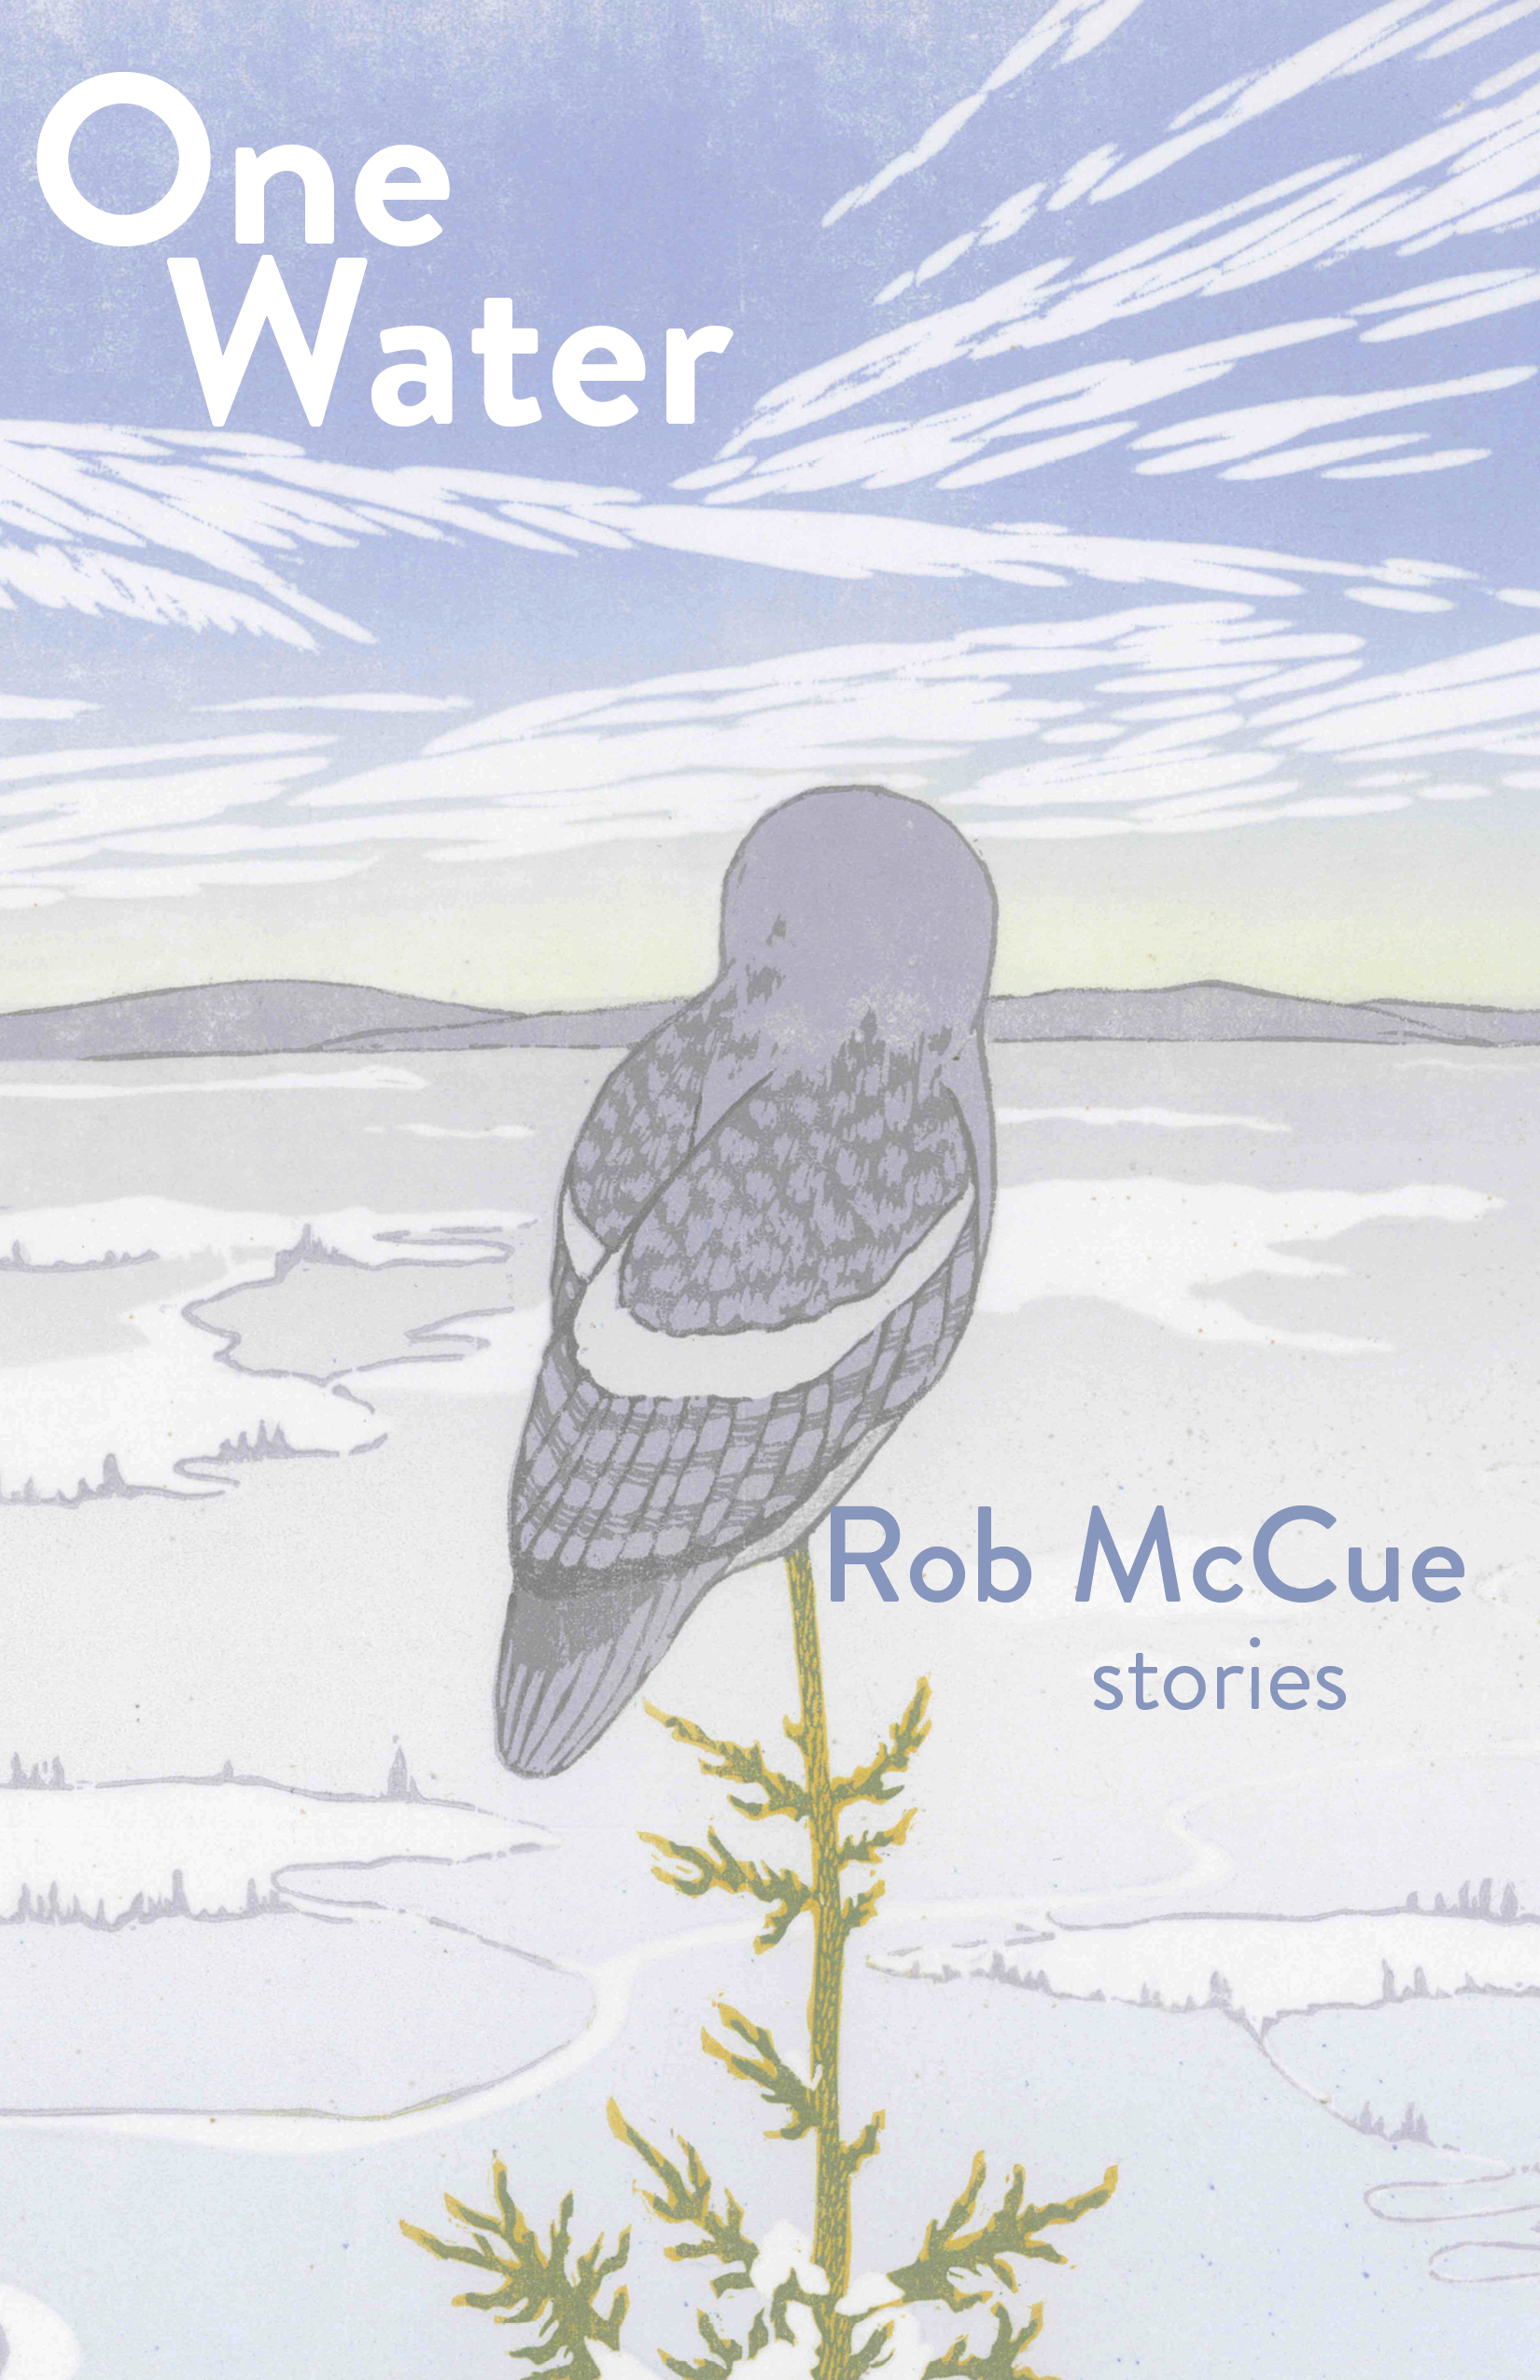 A painting of a desolate landscape with an owl with its back turned and white script that reads One Water stories by Rob McCue.